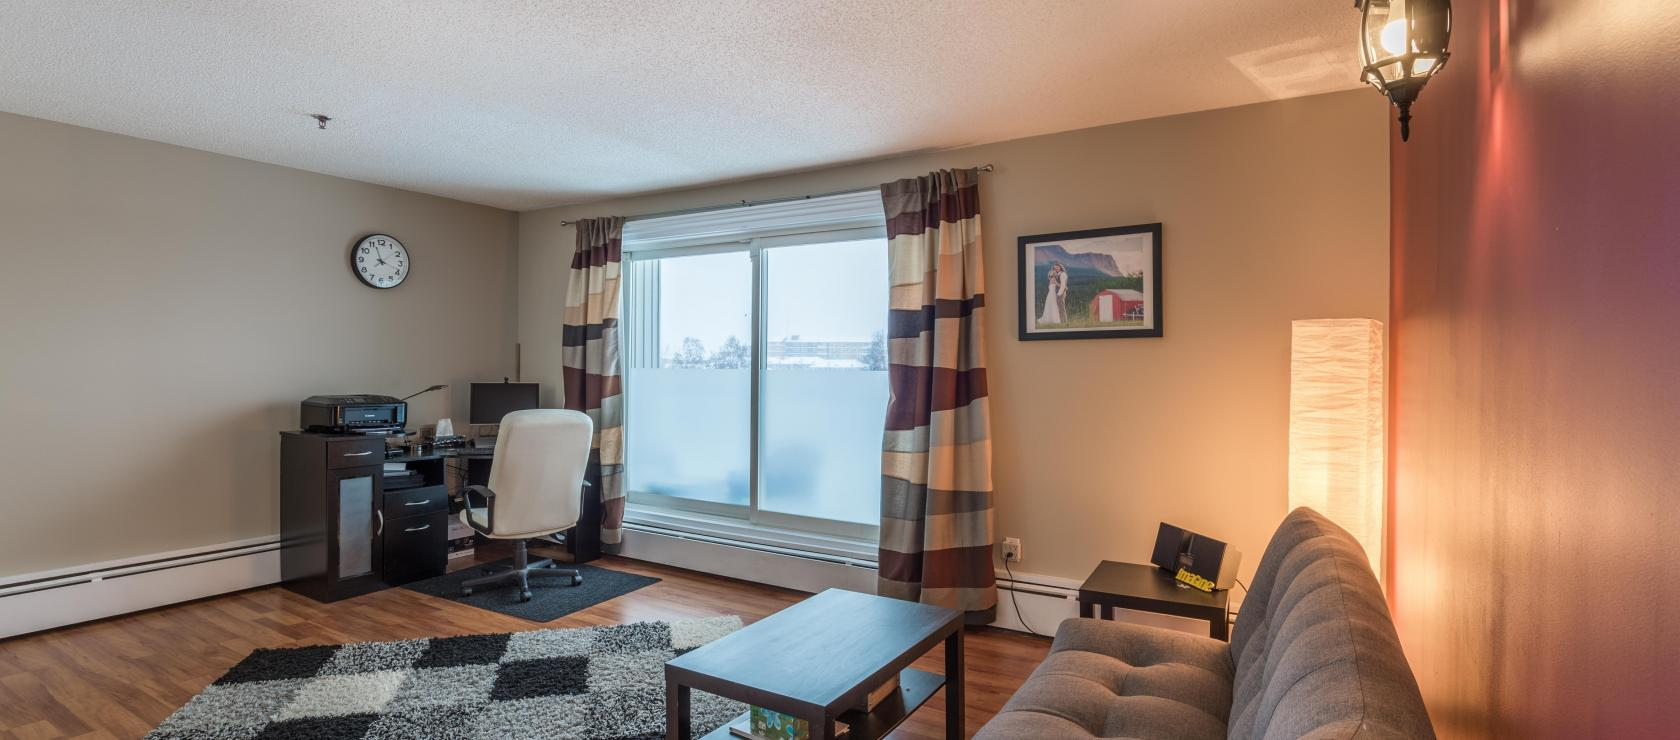 208 - 5600 52nd Avenue, Downtown, Yellowknife 2